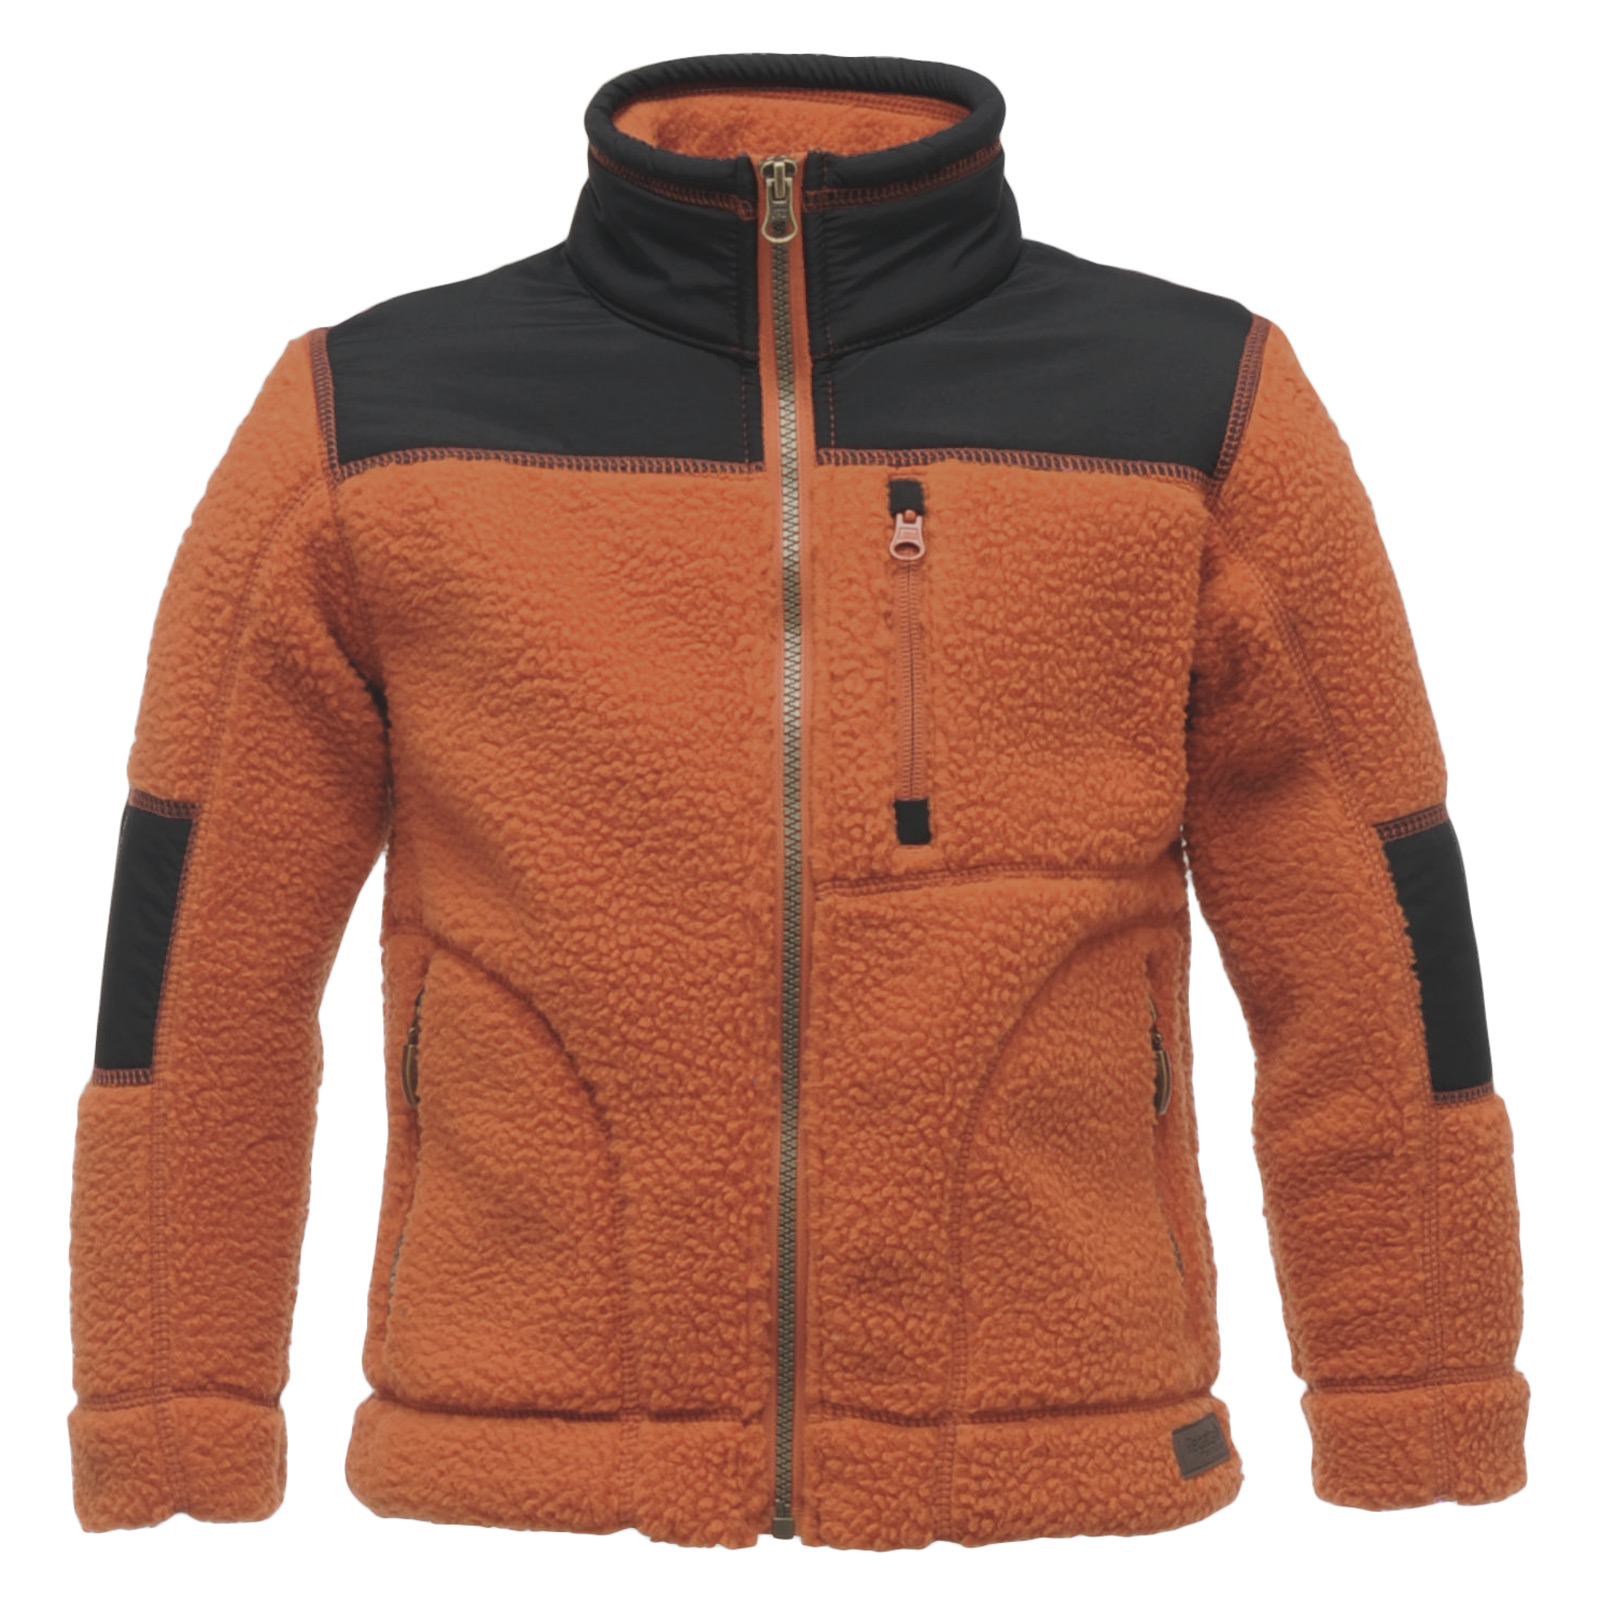 Fast, free shipping on all Kids' Jackets Fleece from Peter Glenn. Save up to 60% on our huge selection, and enjoy!